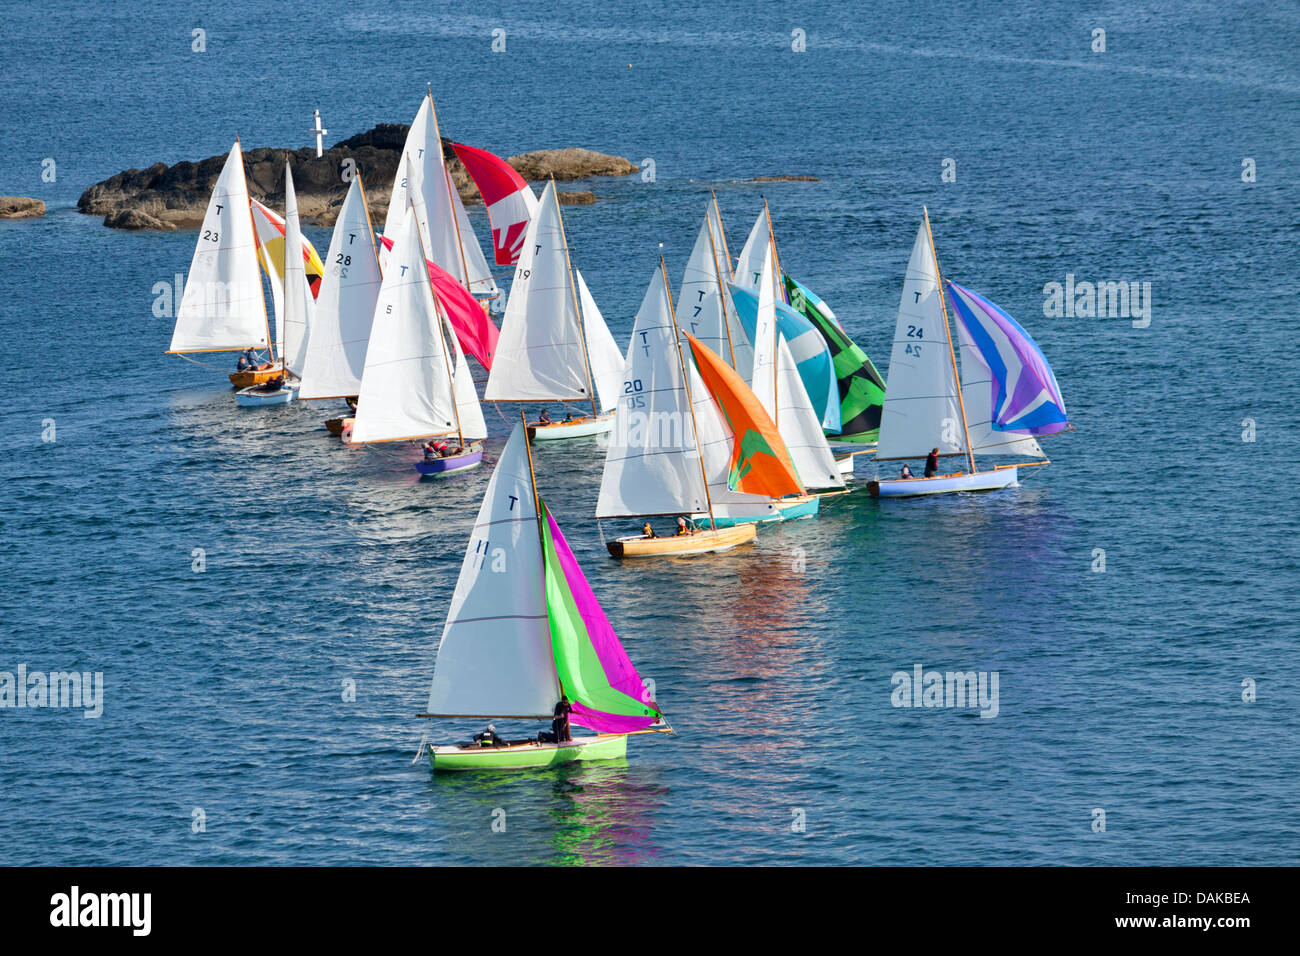 A flotilla of yachts sail out of Fowey's Estuary - Stock Image